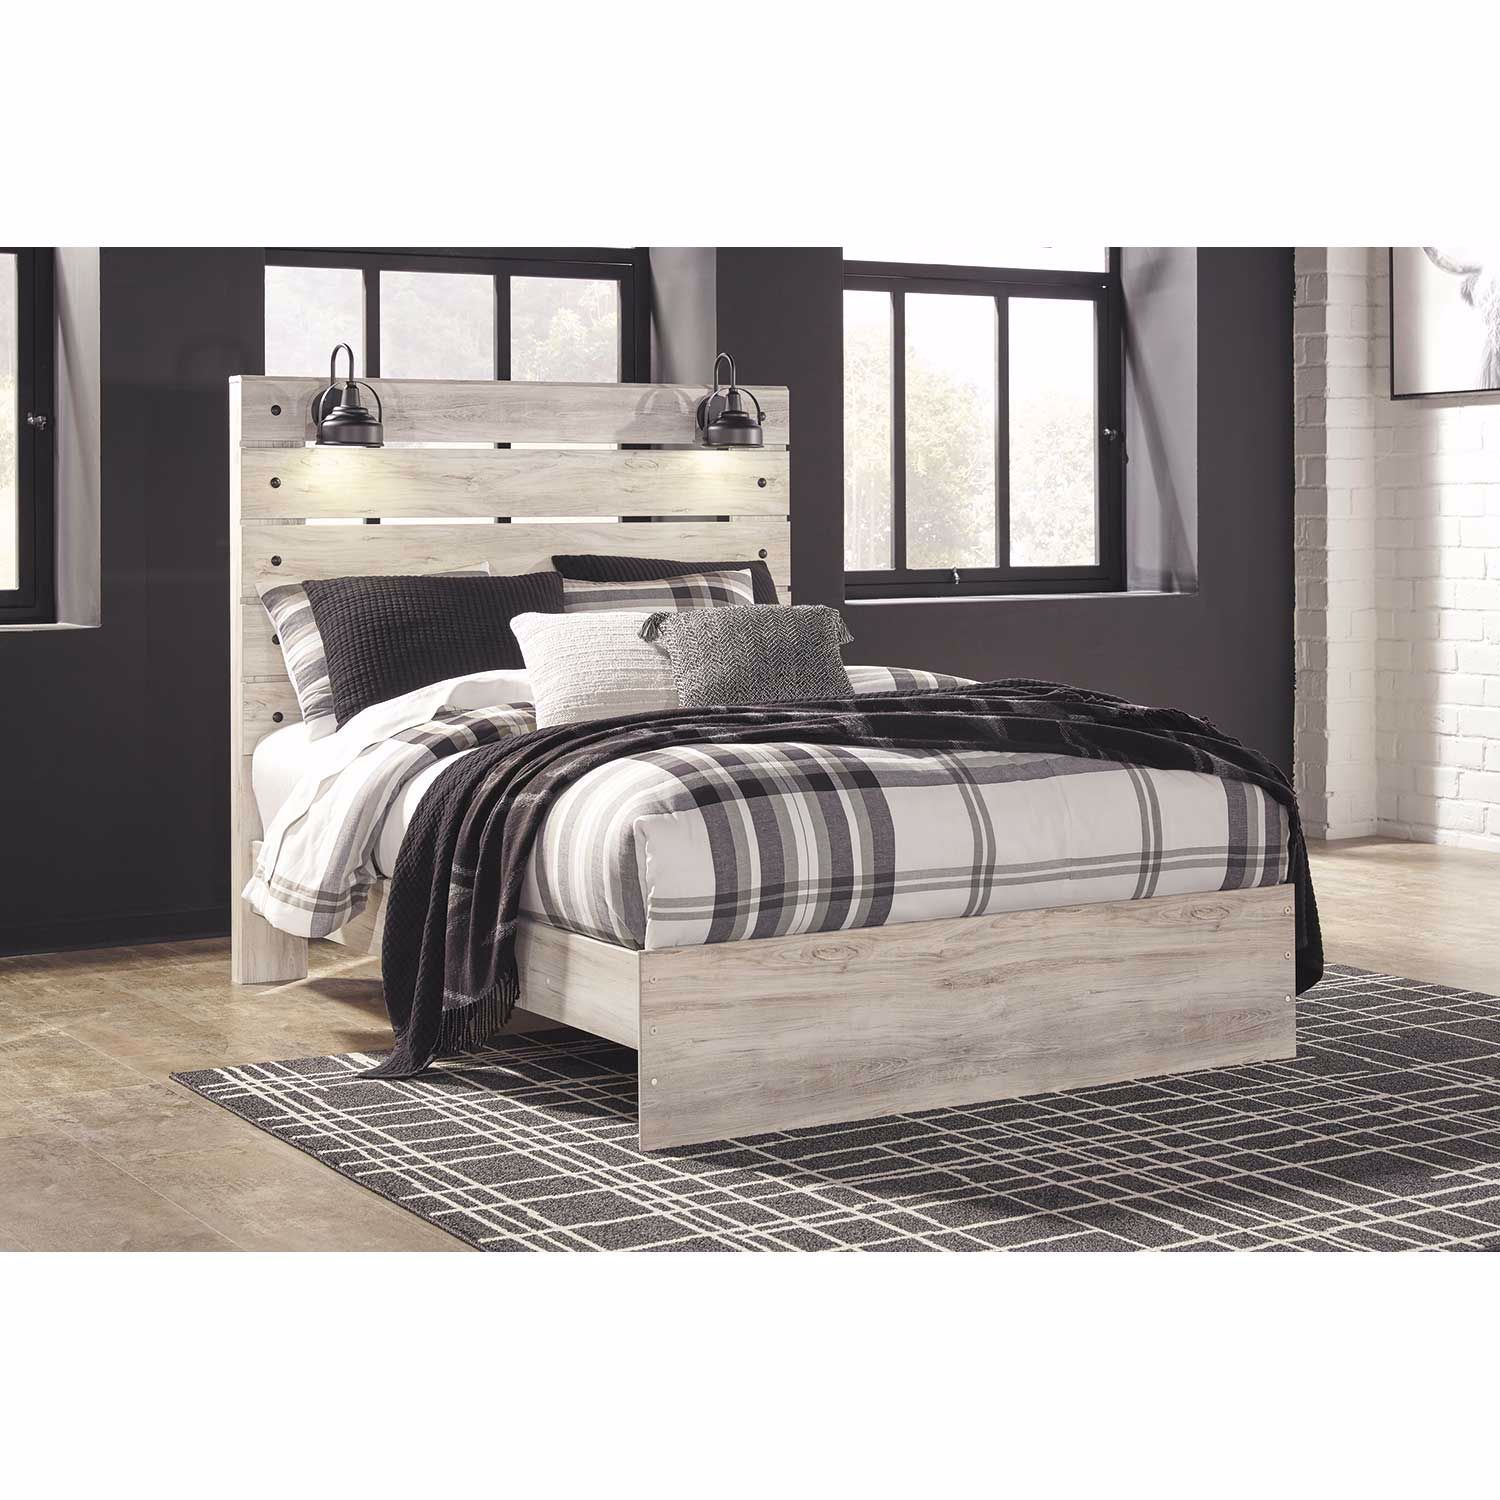 Cambeck Queen Panel Bed B192 54 57 96 Ashley Furniture Afw Com